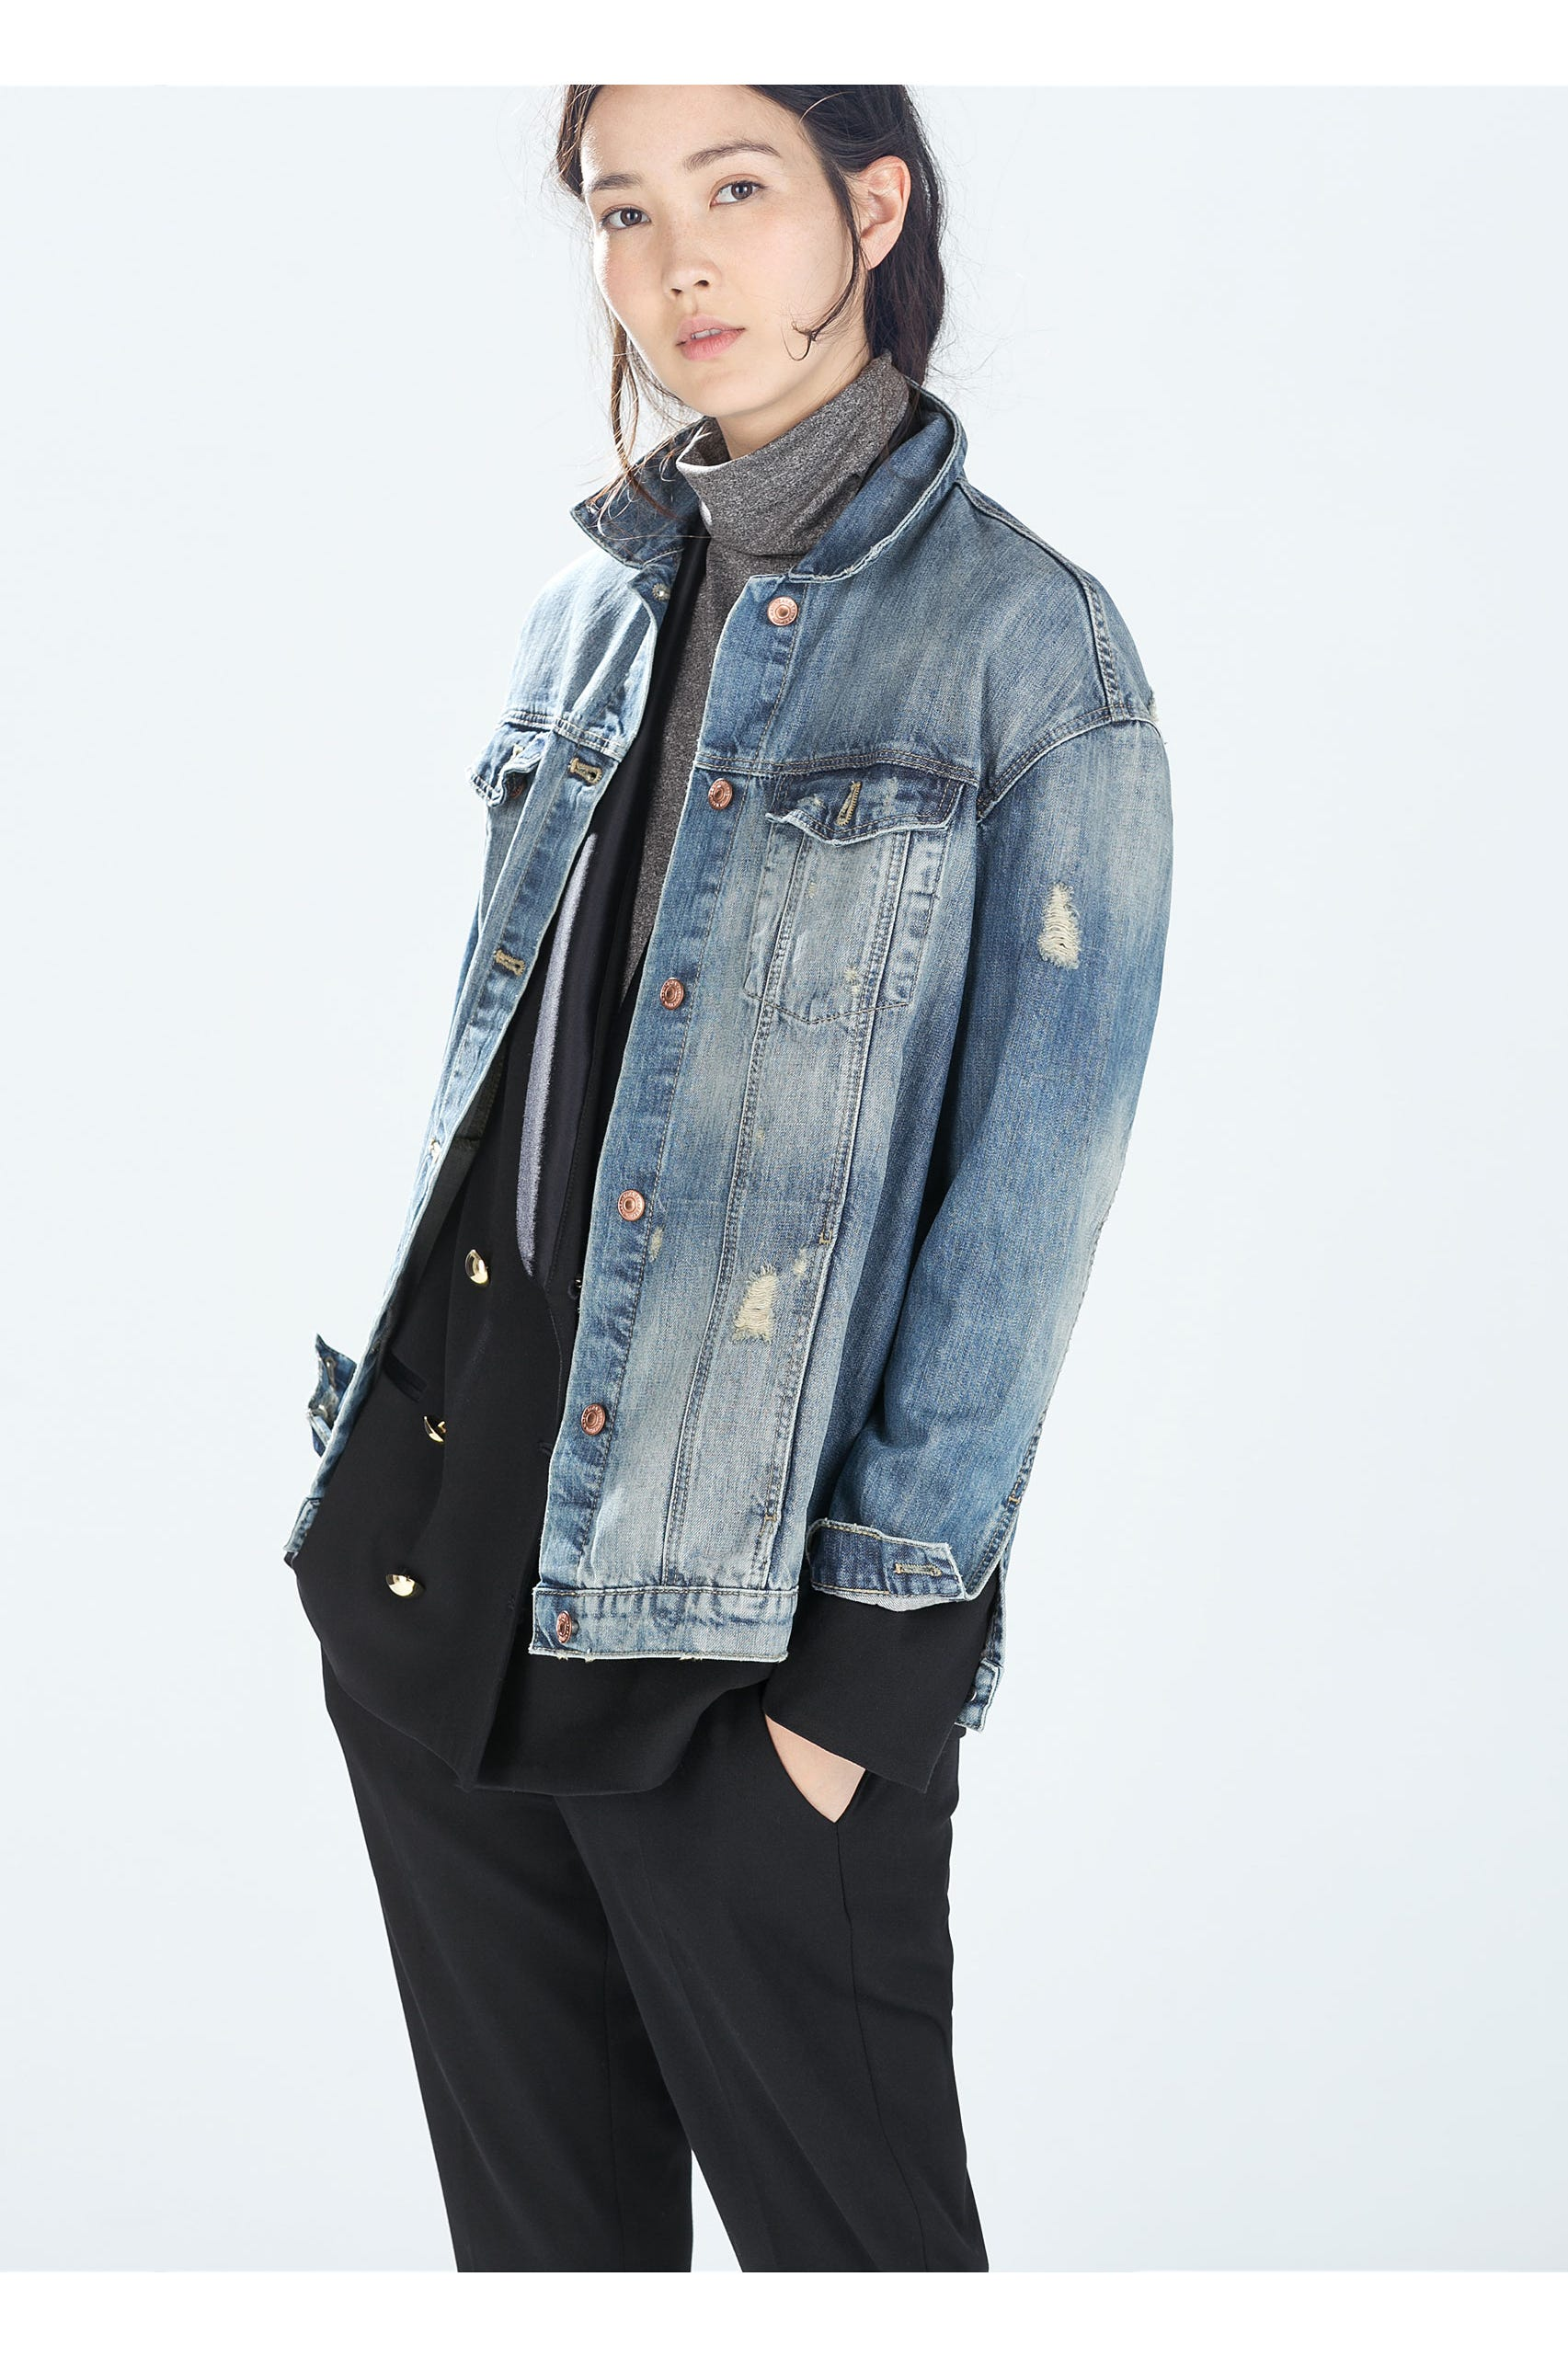 Denim Jackets Fall 2014 - Stylish Jeans